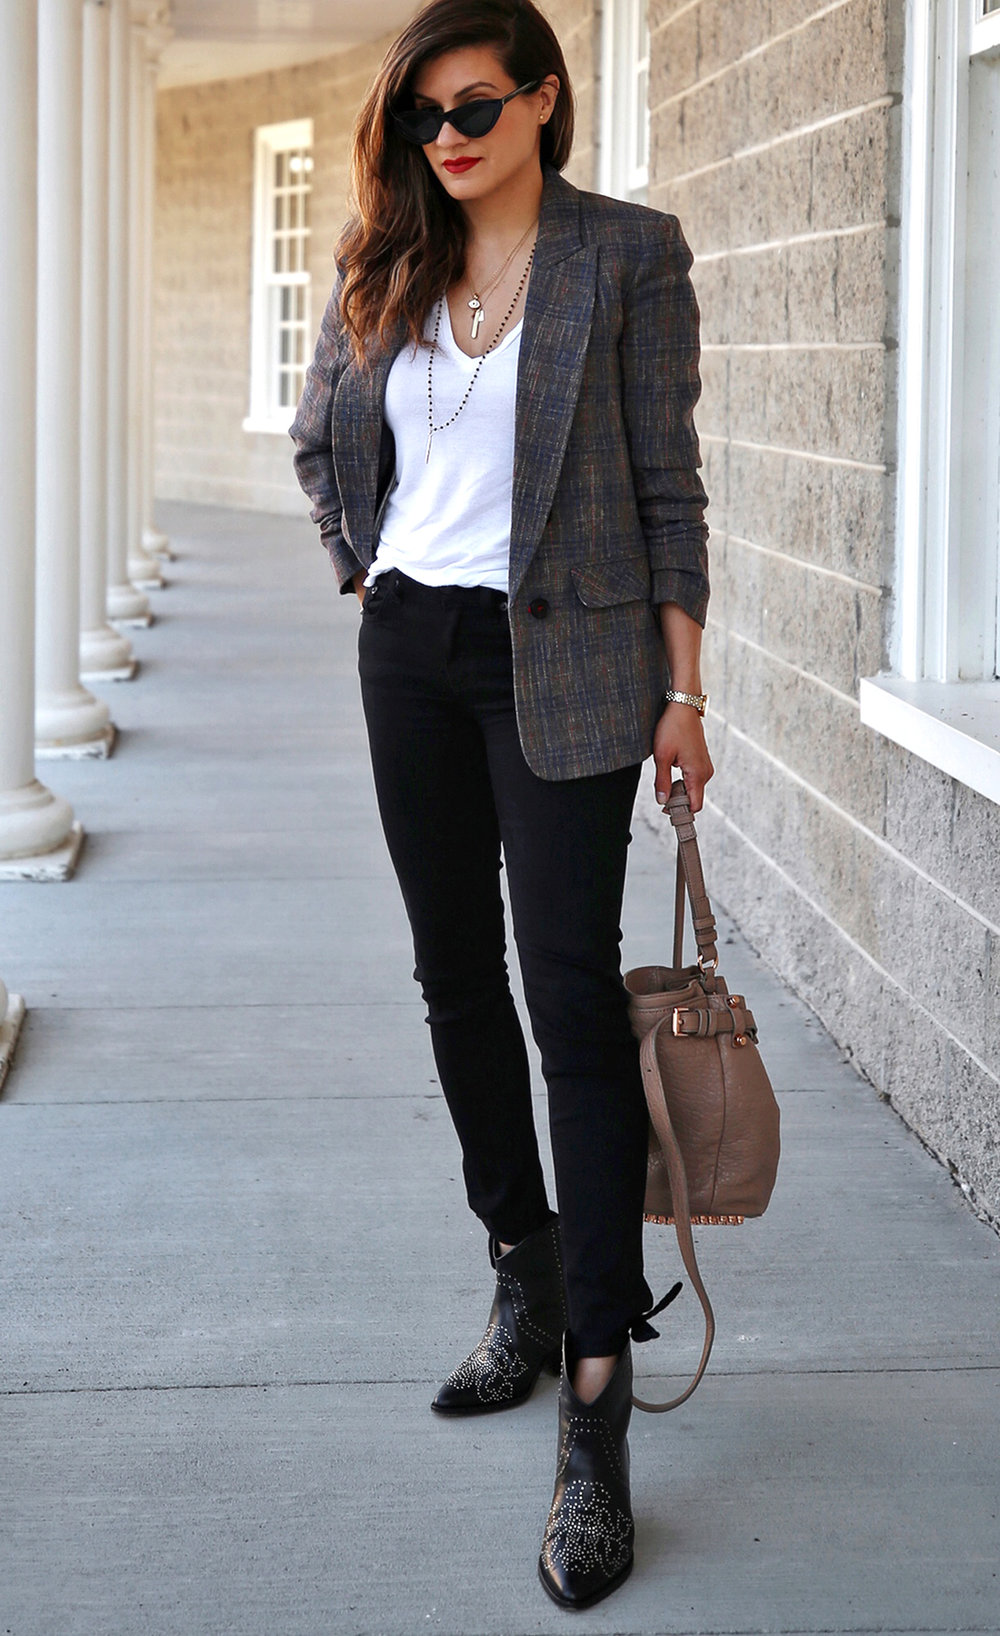 Veronica Beard plaid blazer, Rag & Bone black skinny jeans, Isabel Marant black studded Dollan cowboy boots, Alexander Wang tanned Diego bag with rosegold hardwaare, street style, woahstyle.com by nathalie martin  18.jpg